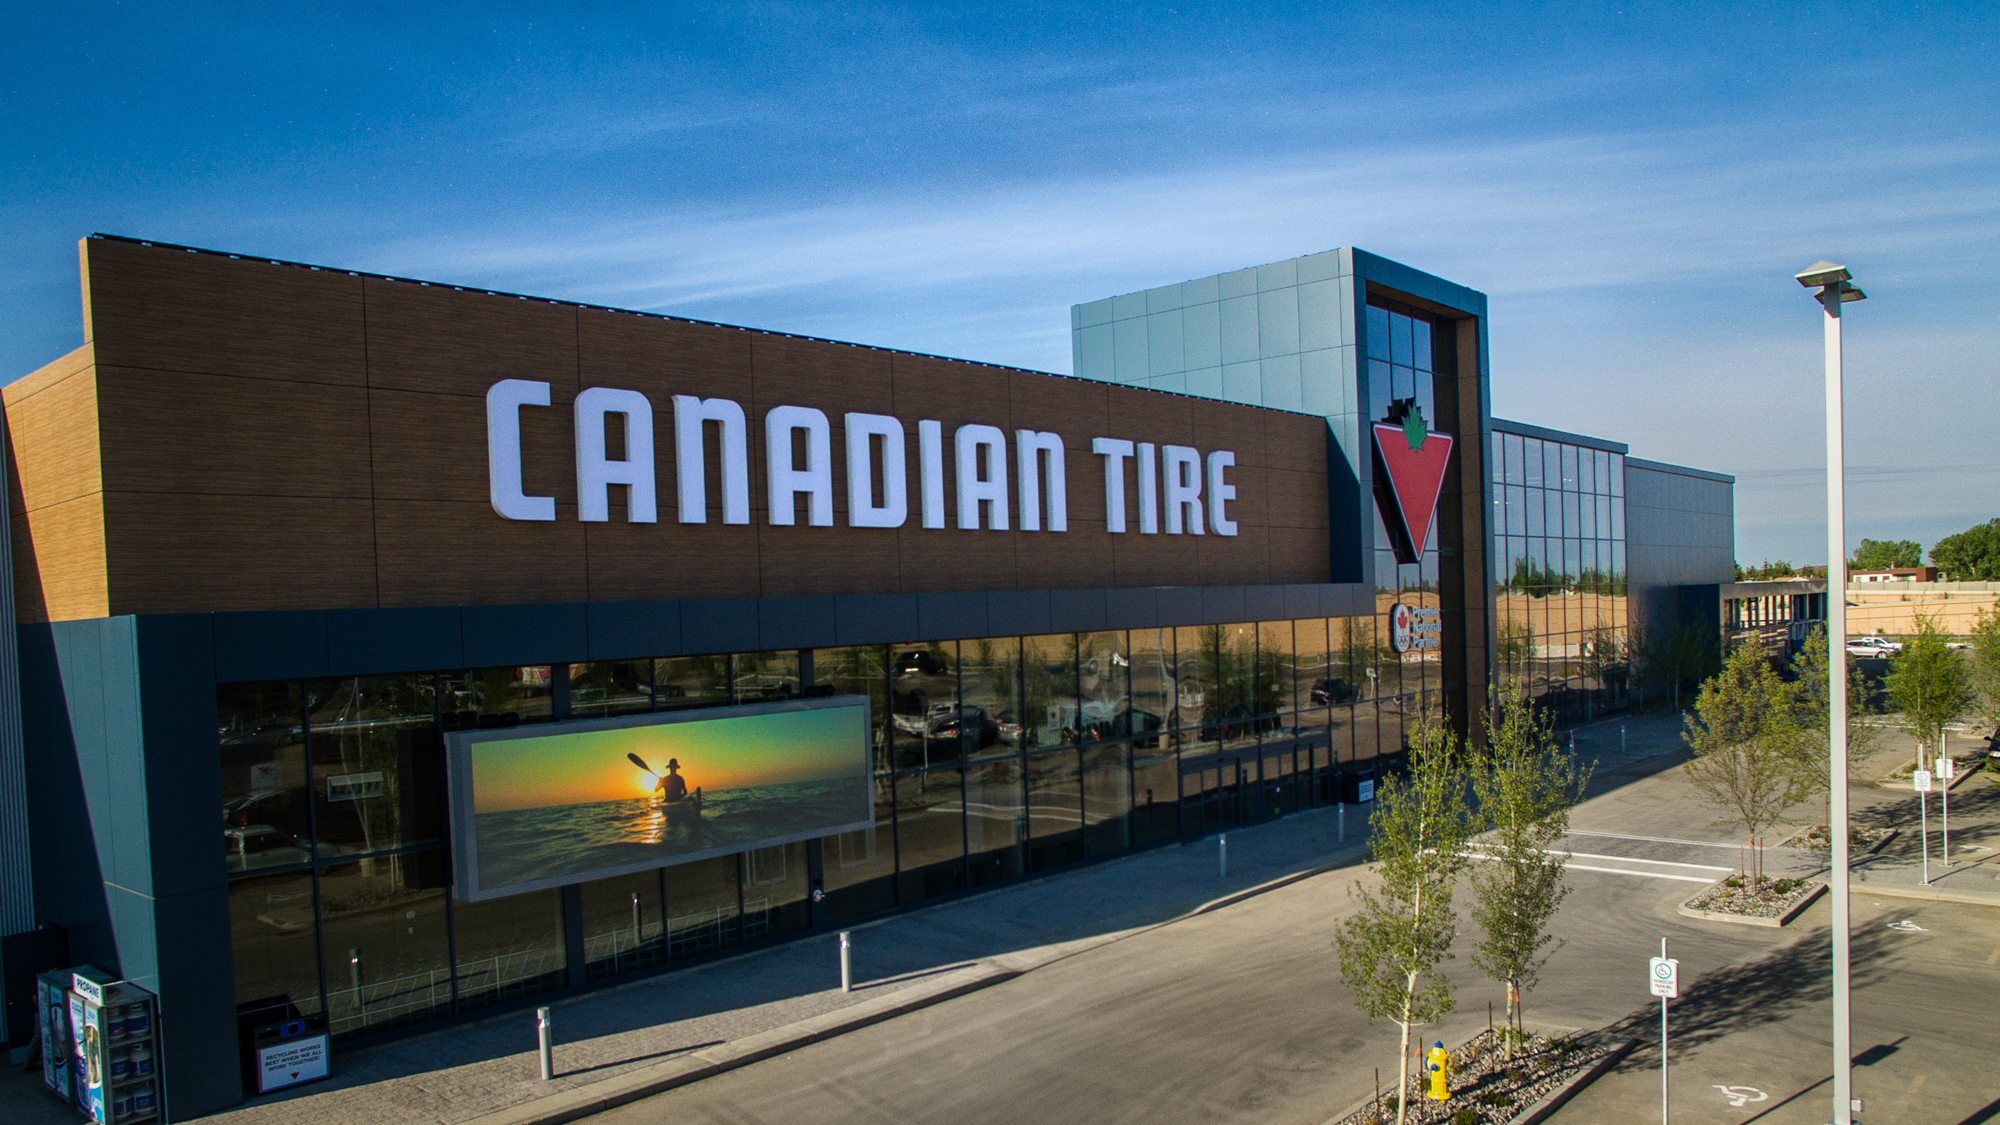 Biggest Canadian Tire Store Features More Than 100 Digital